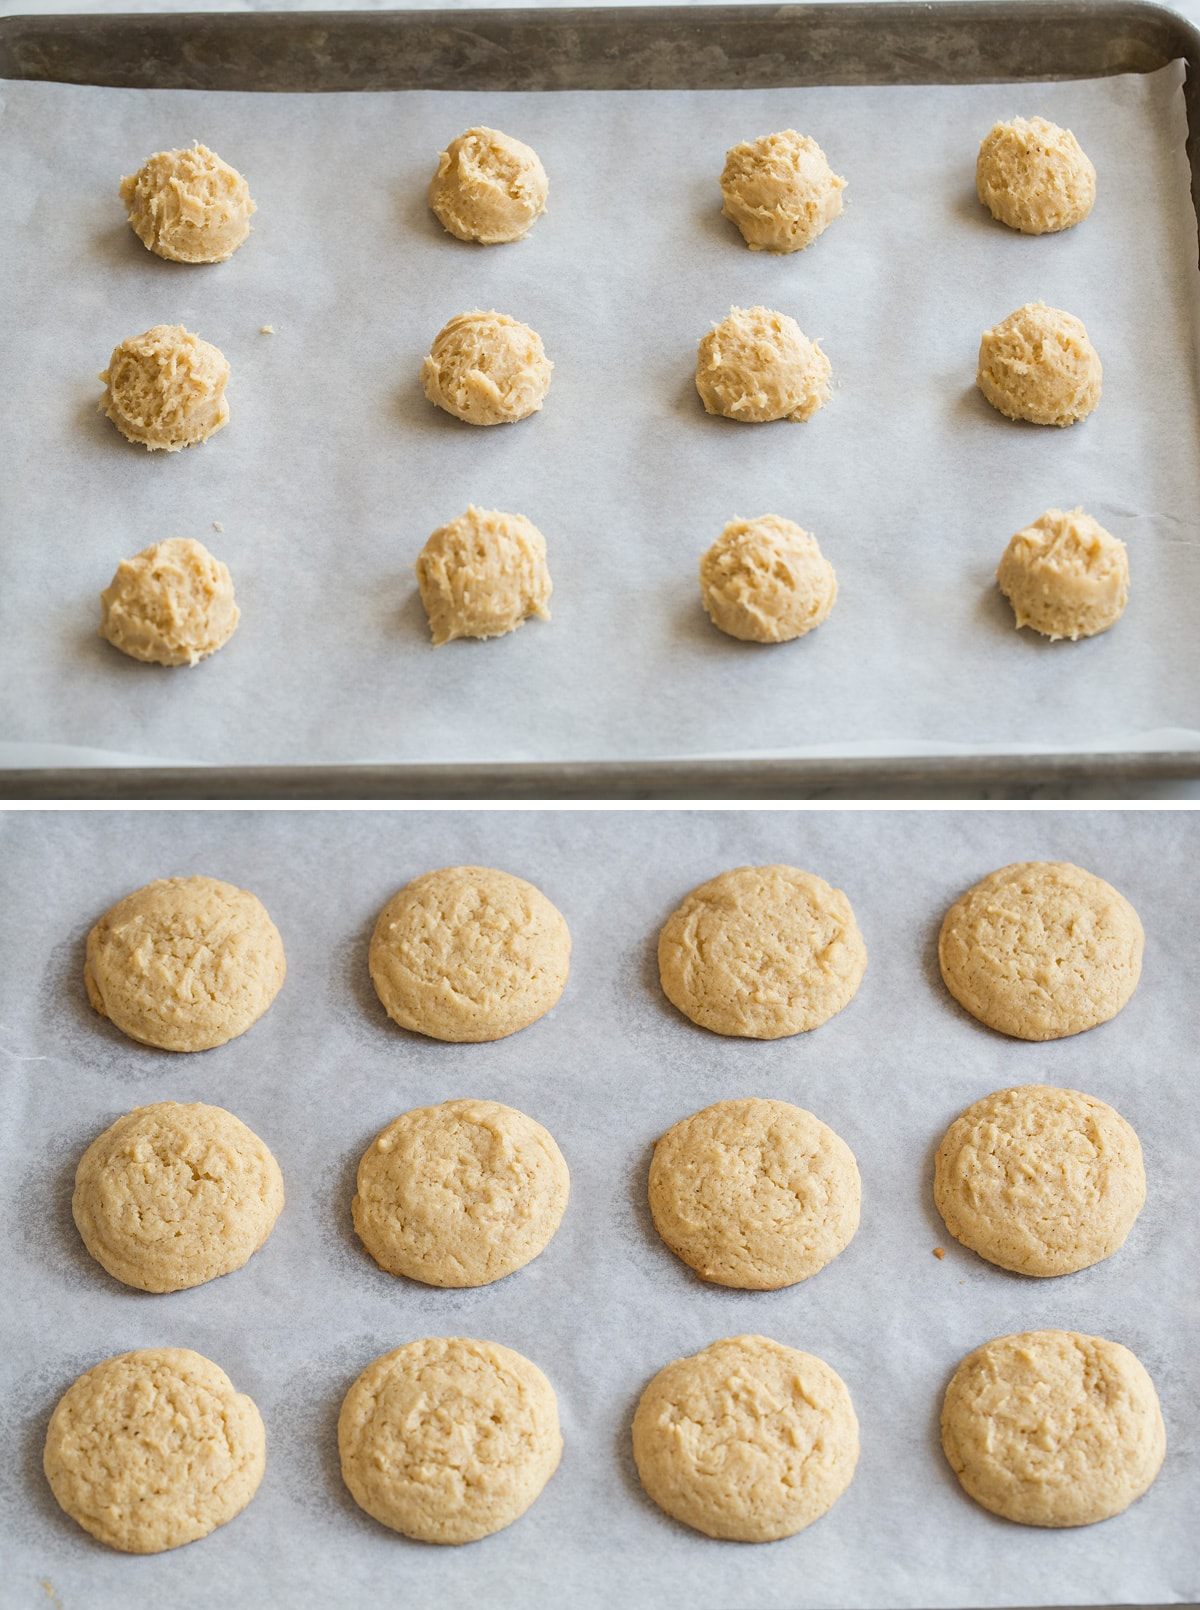 Eggnog Cookies shown here before and after baking on parchment paper lined baking sheet.